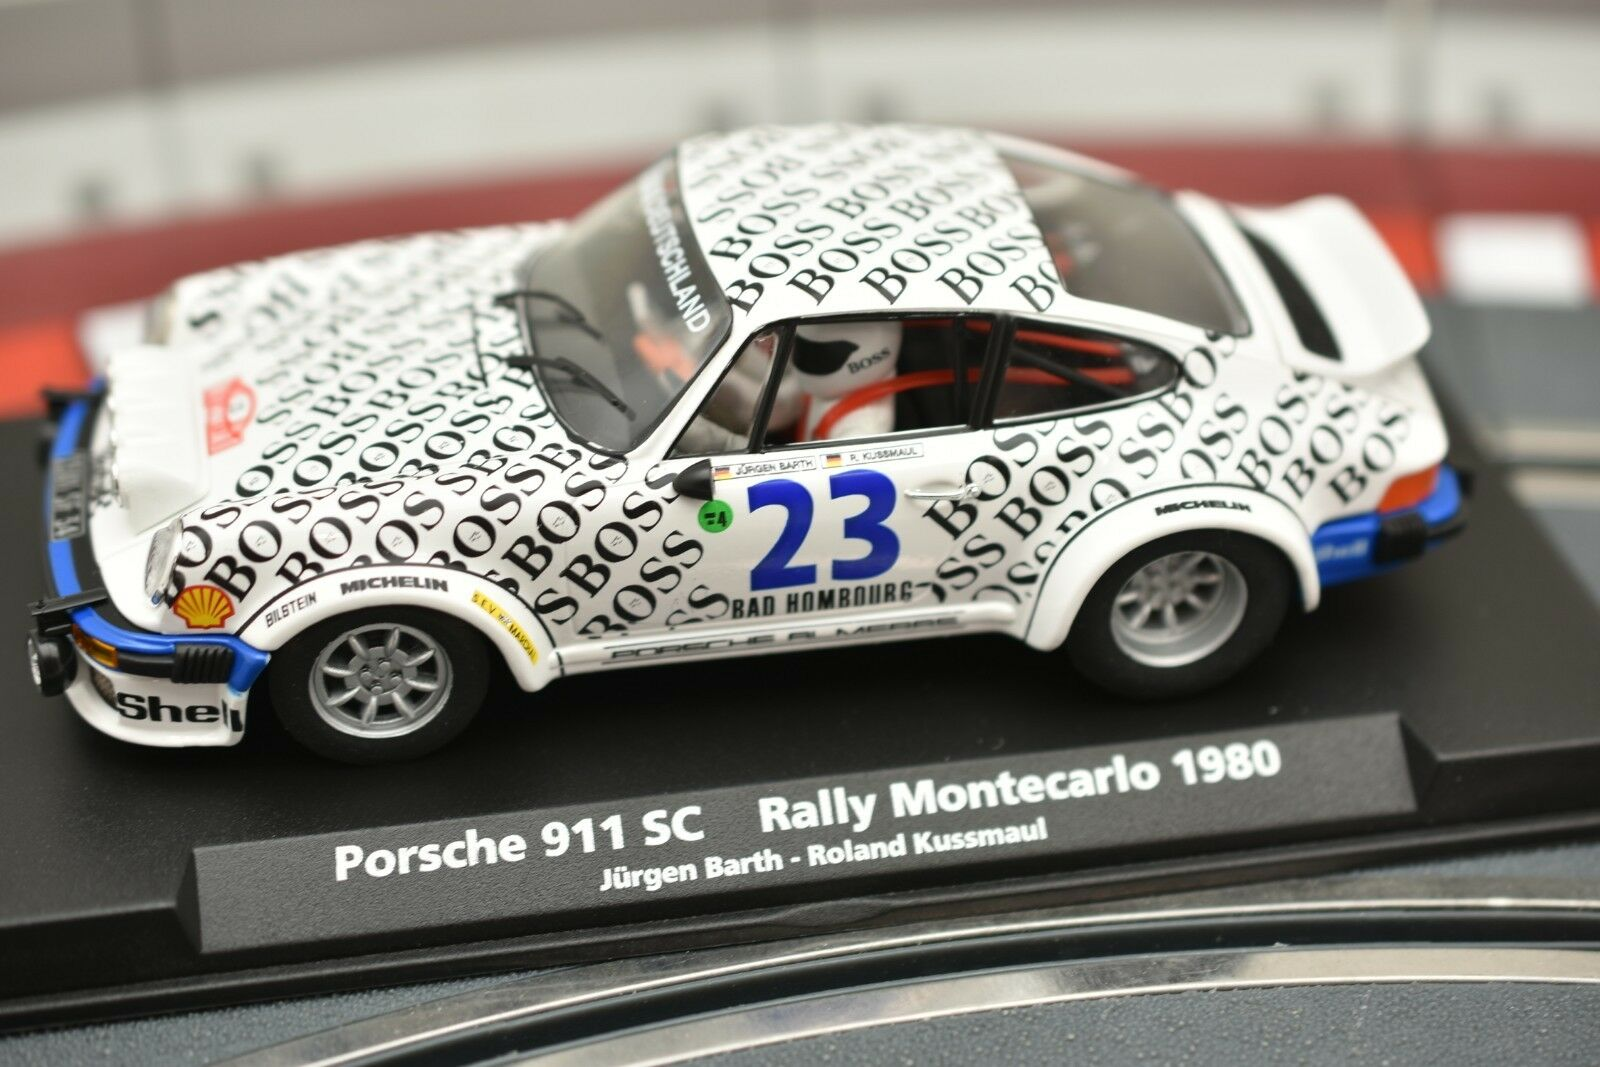 88170 FLY CAR 1 32 CAR MODEL PORSCHE 911 SC RALLY MONTECARLO 1980 BARTH-KUSSMAUL